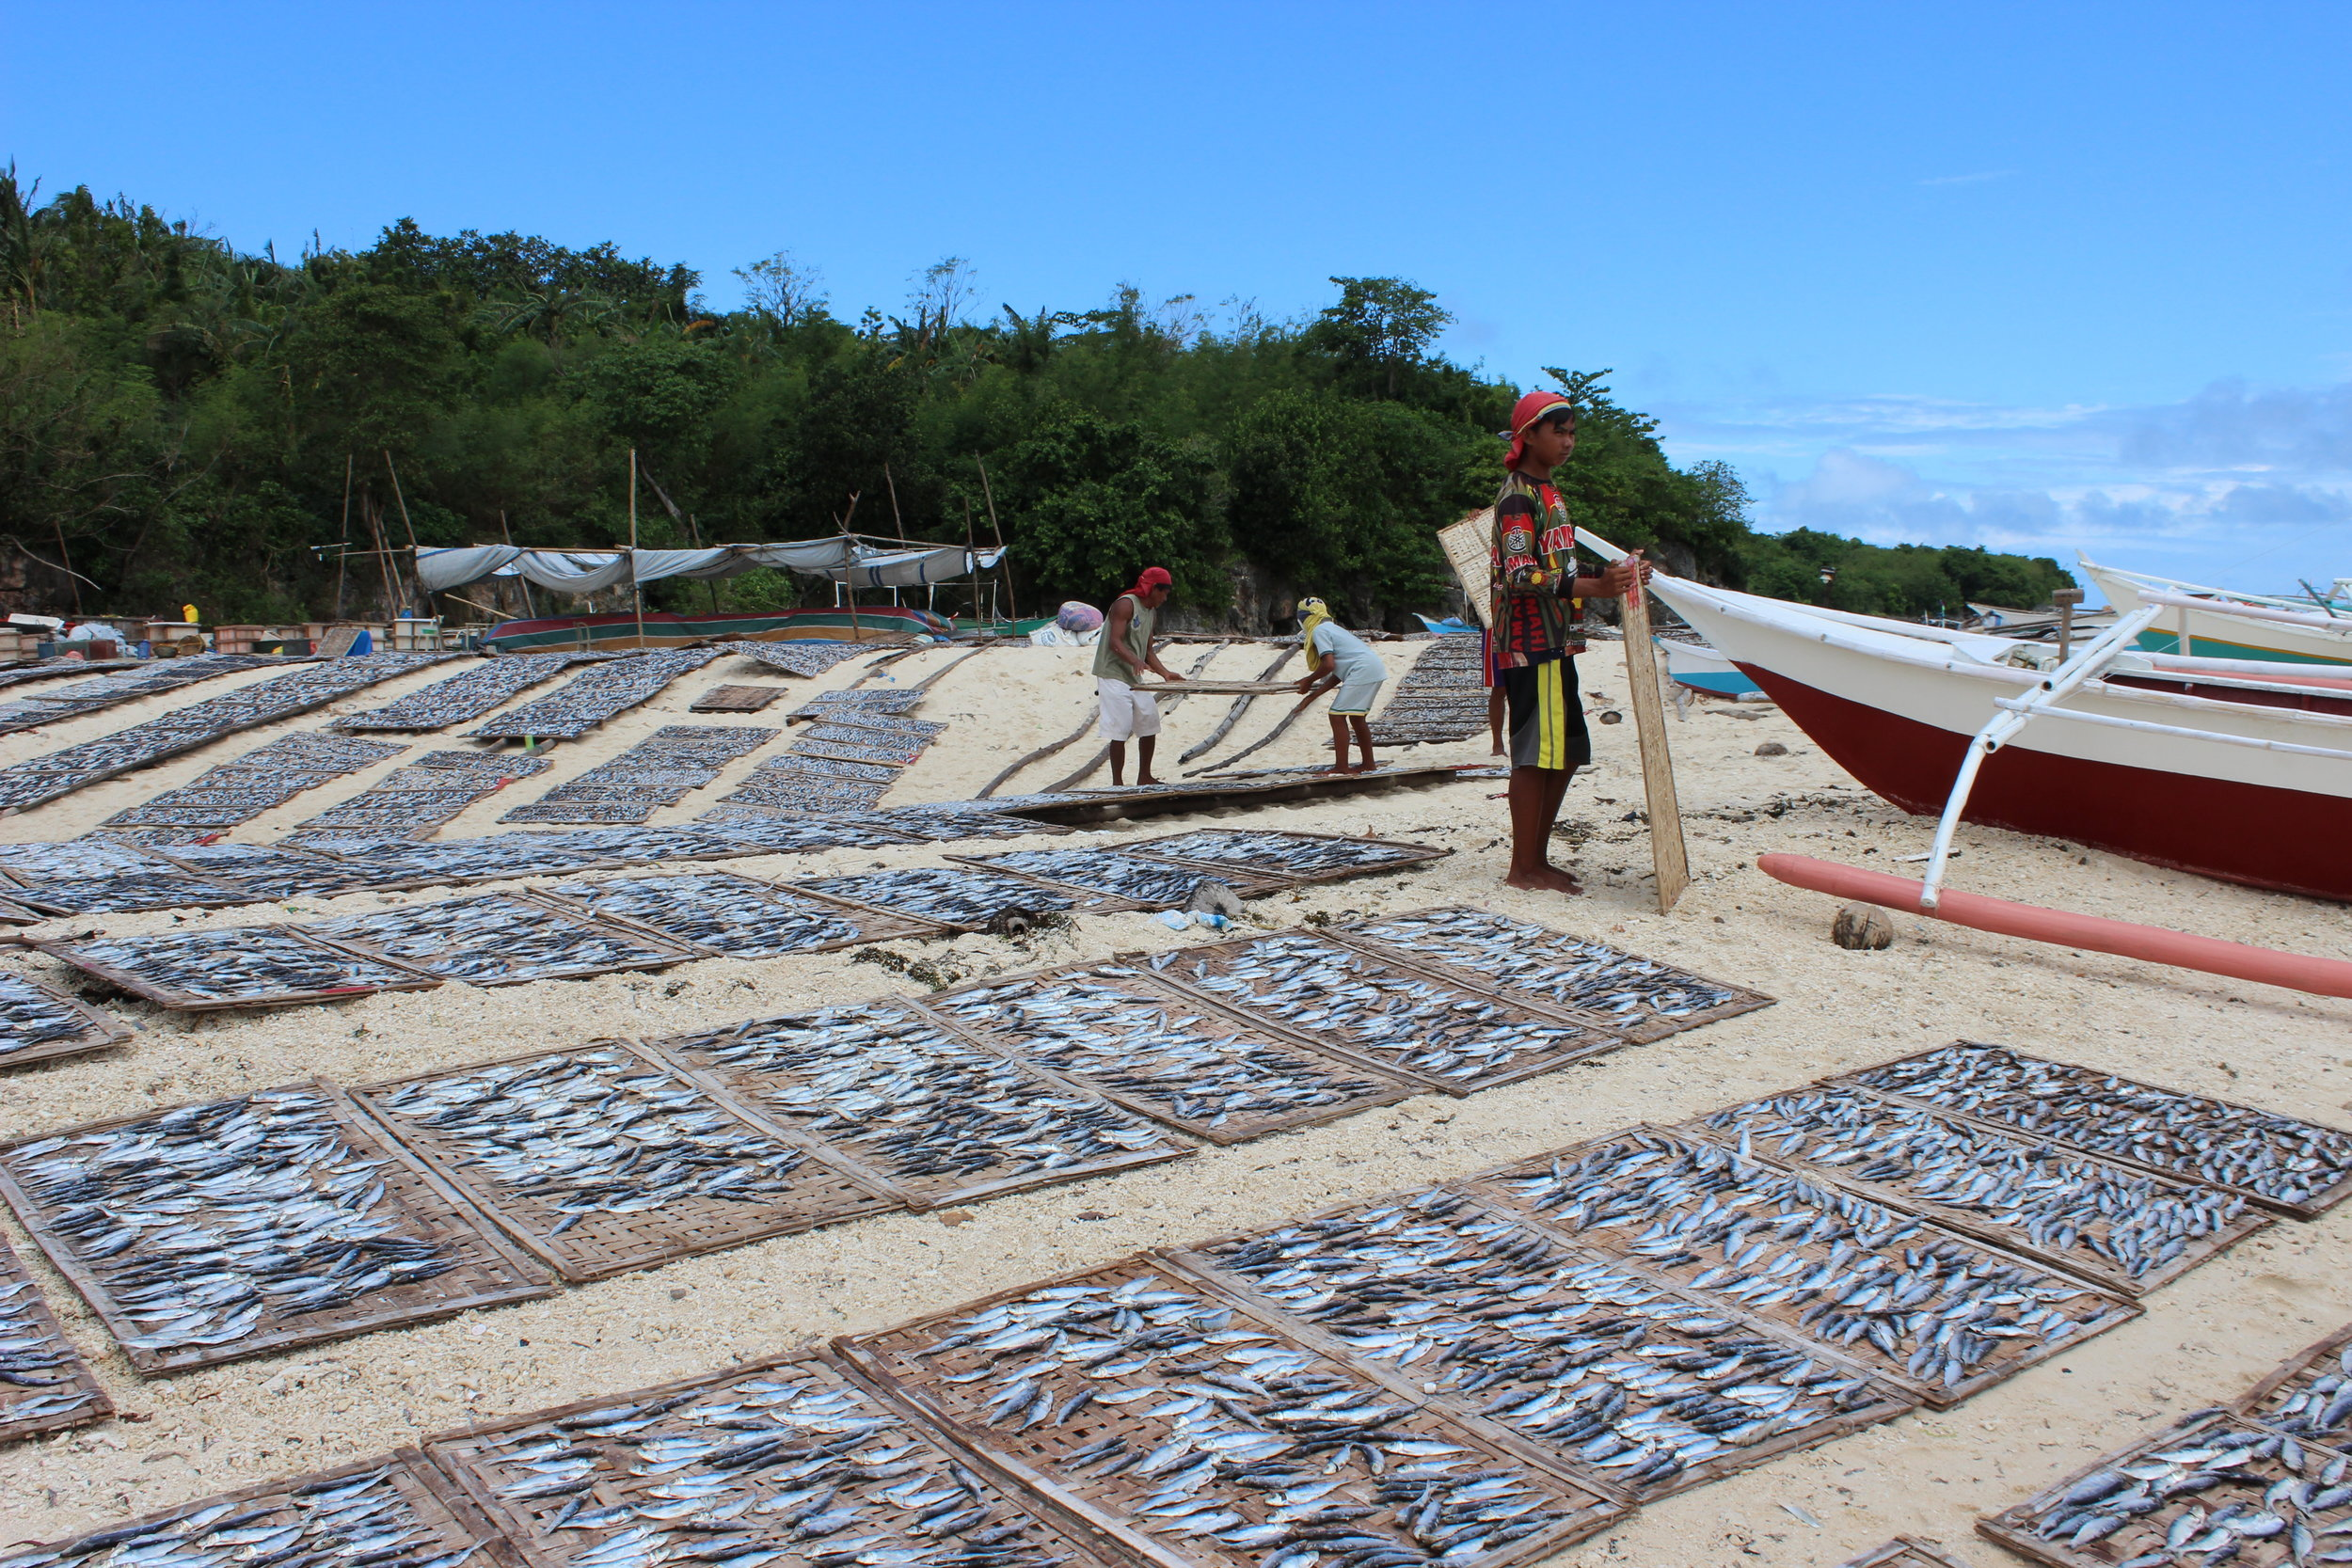 95% of Gibitngil Islet residents earn their livelihoods by fishing. These fish are being dried in the sun for later sale.